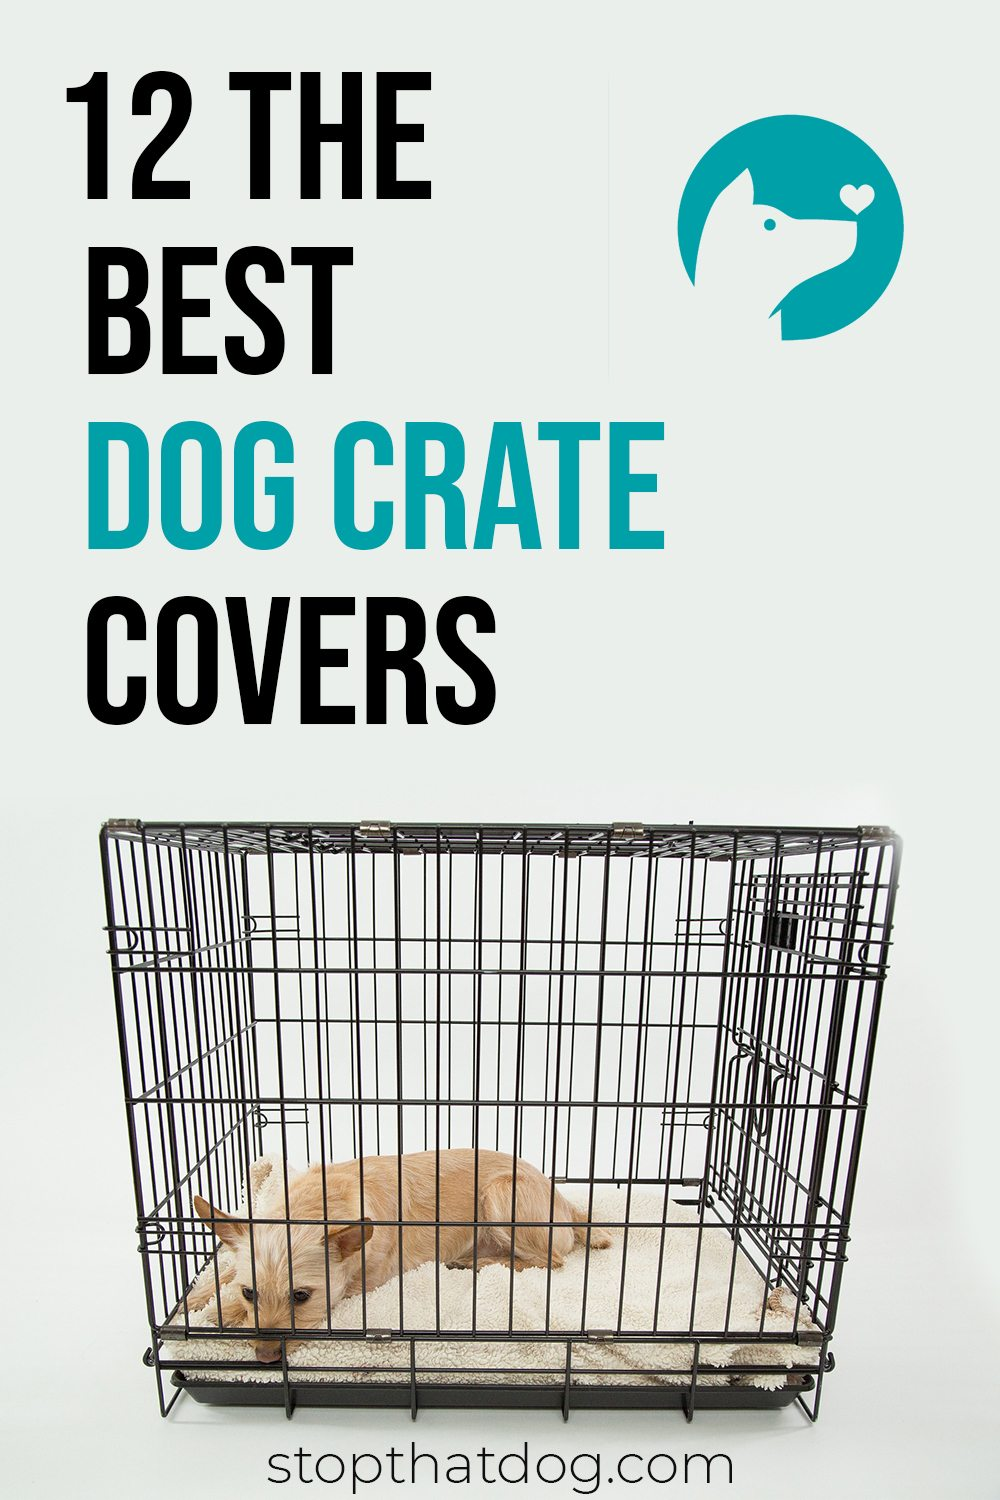 Need a quality dog crate cover? If so, this guide highlights the best dog crate covers on the market.